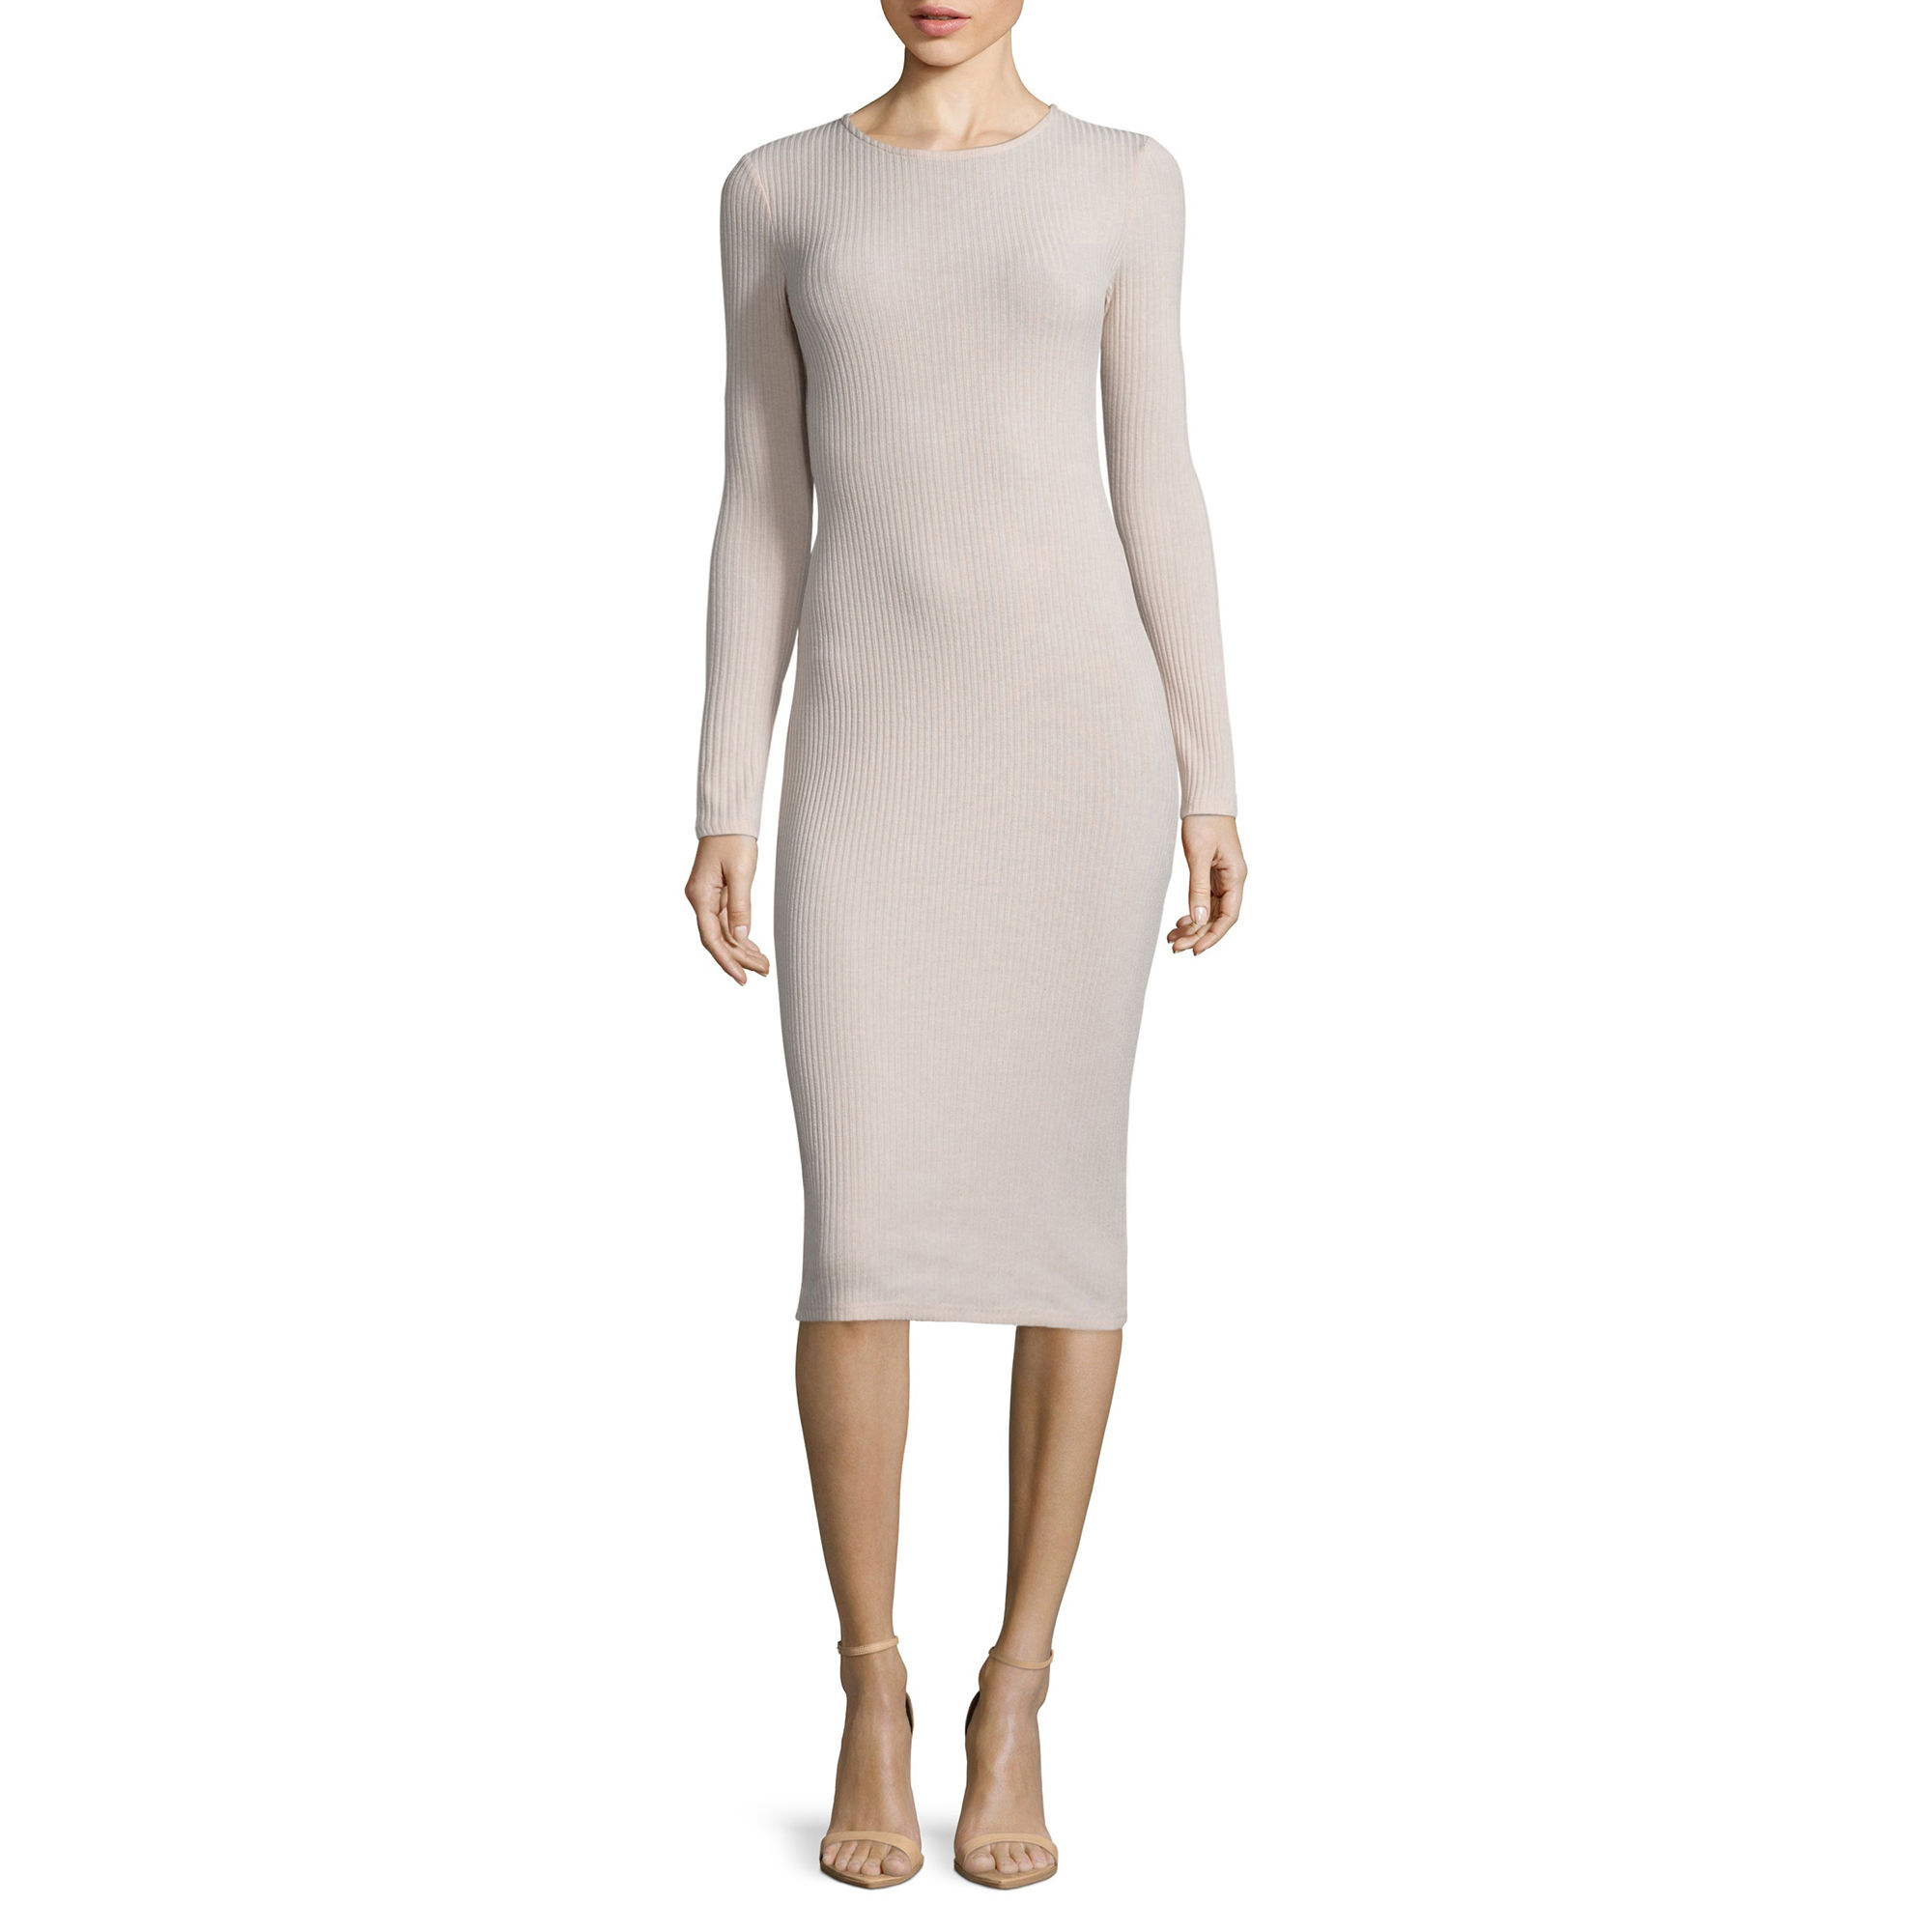 BELLE + SKY Long-Sleeve Rib Dress